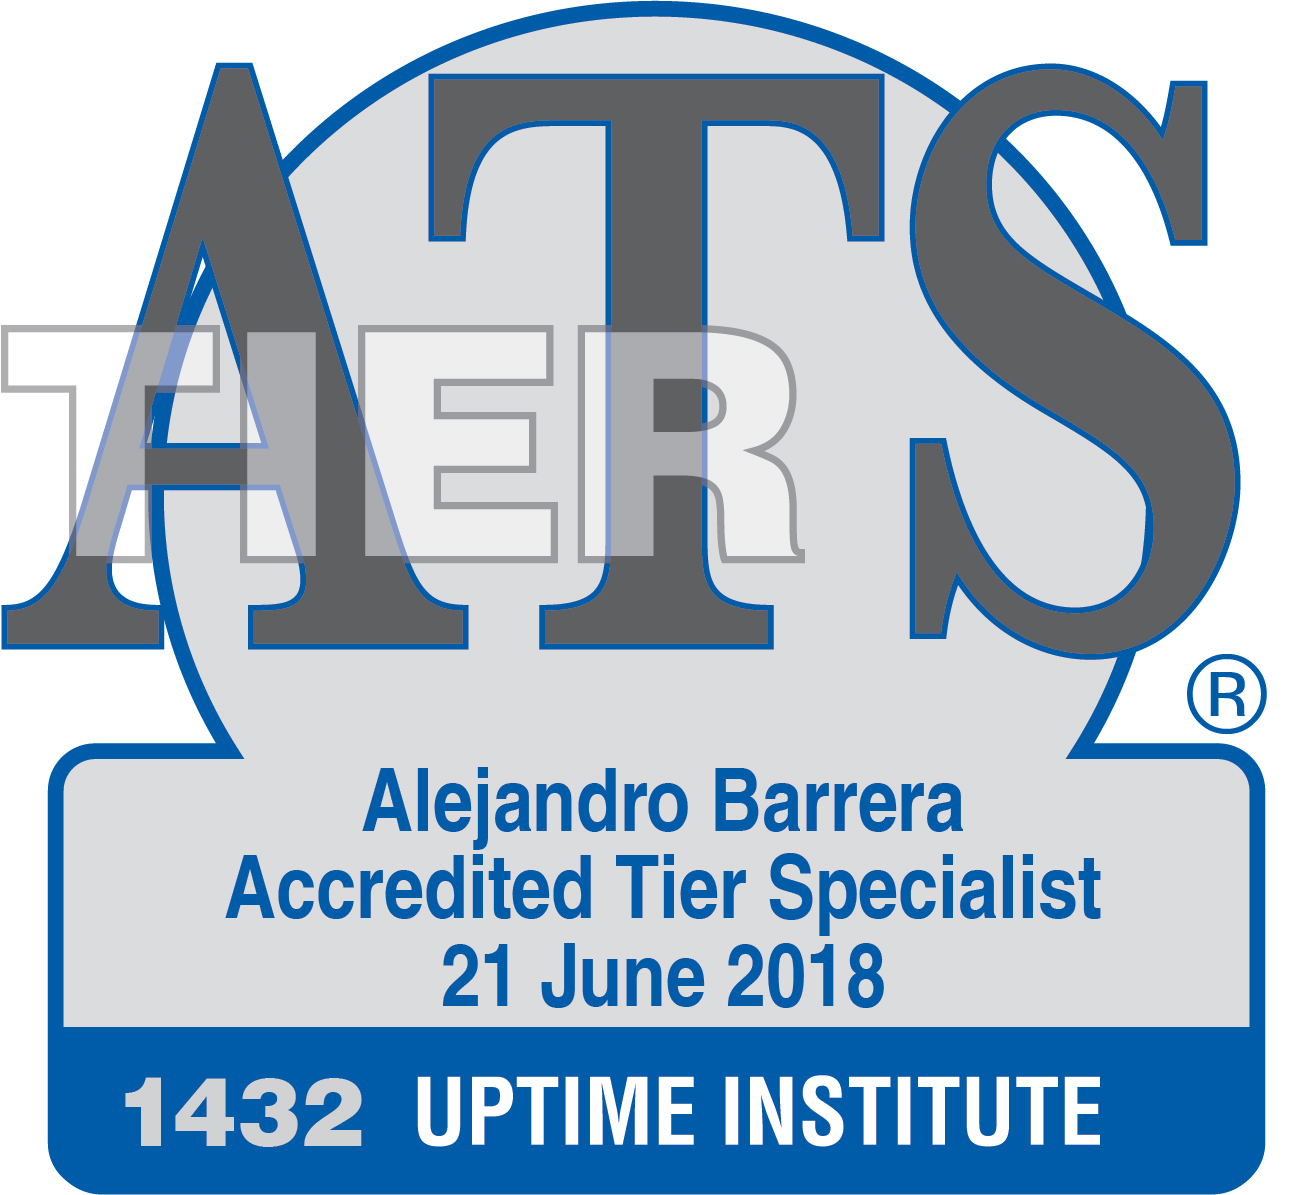 bd62867806f Accredited Tier Specialist Roster - Uptime Institute LLC